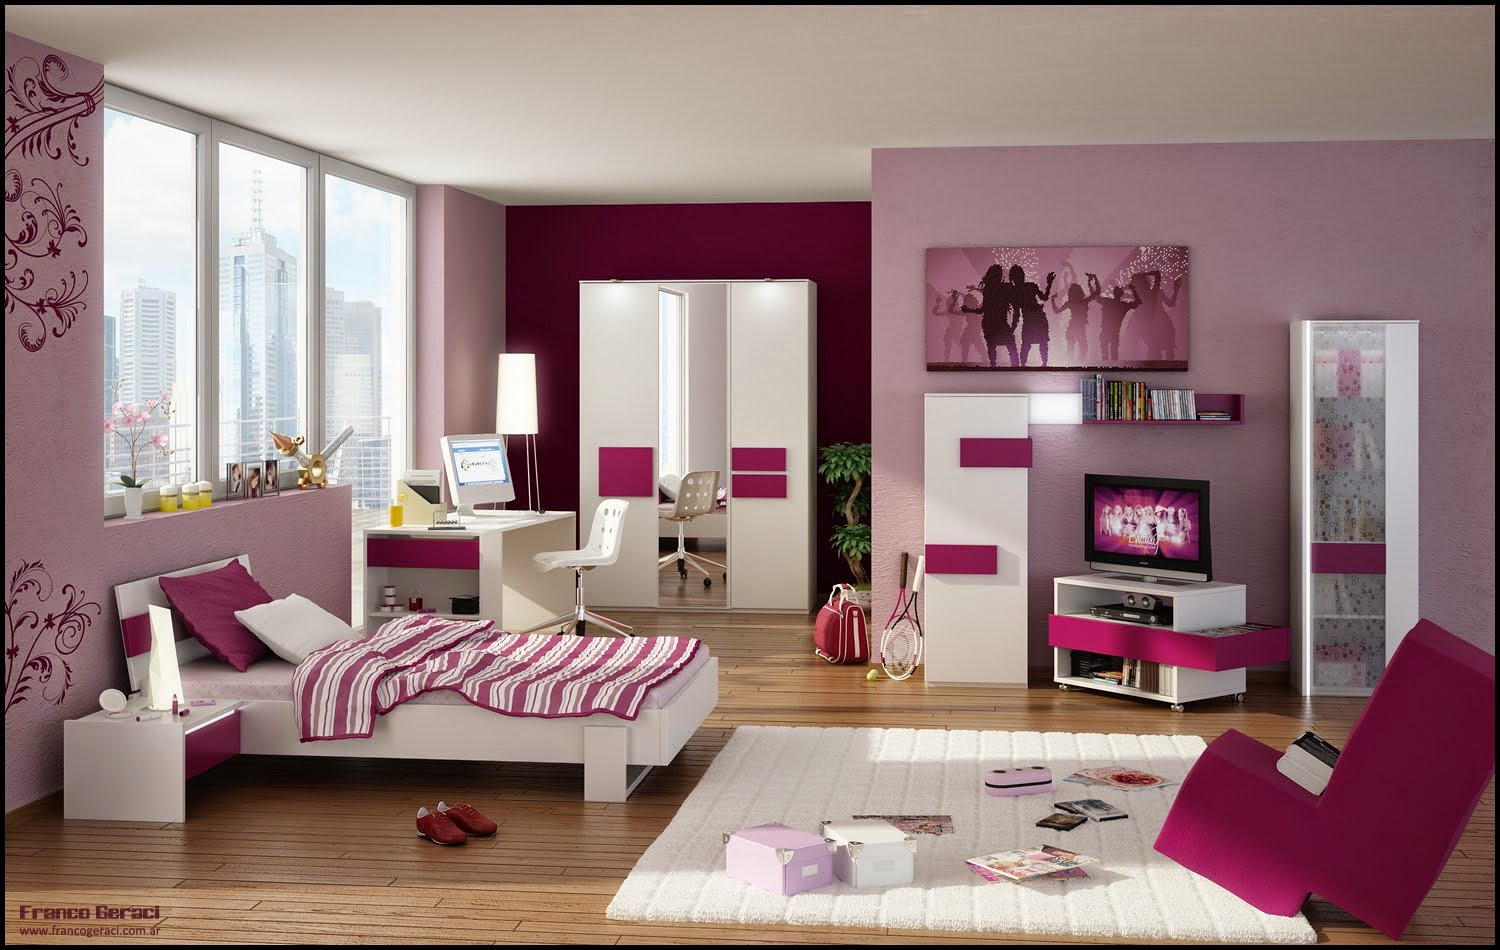 girly bedroom ideas and home decor designs